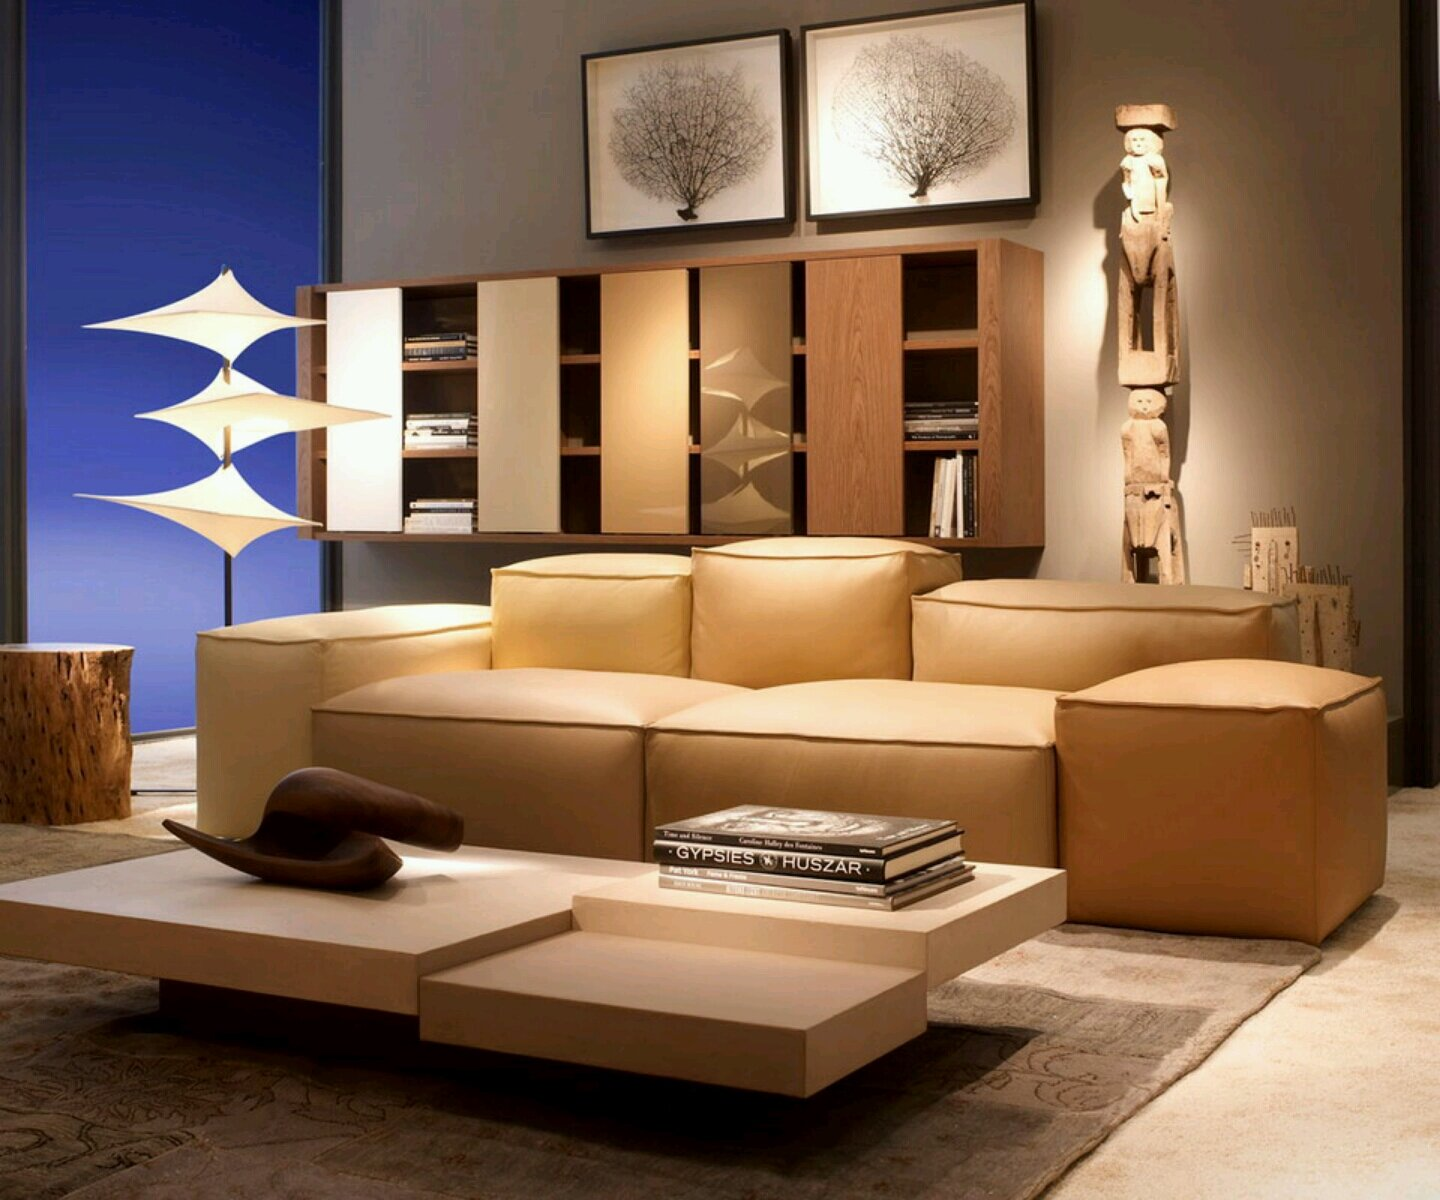 15 really beautiful sofa designs and ideas Sofa set designs for home